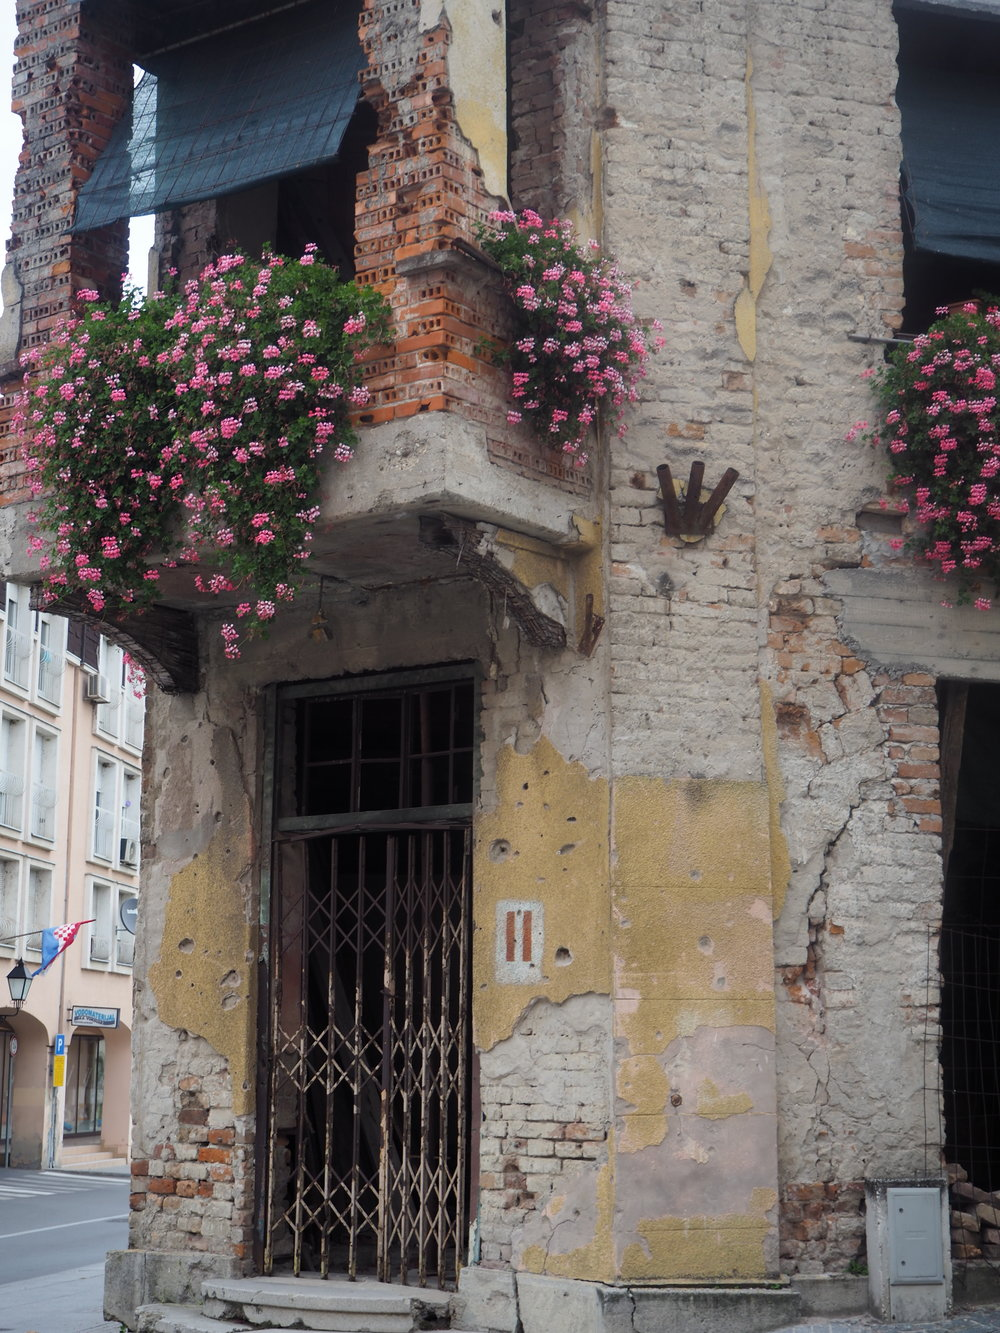 Reminders of a war-torn country in Vukovar